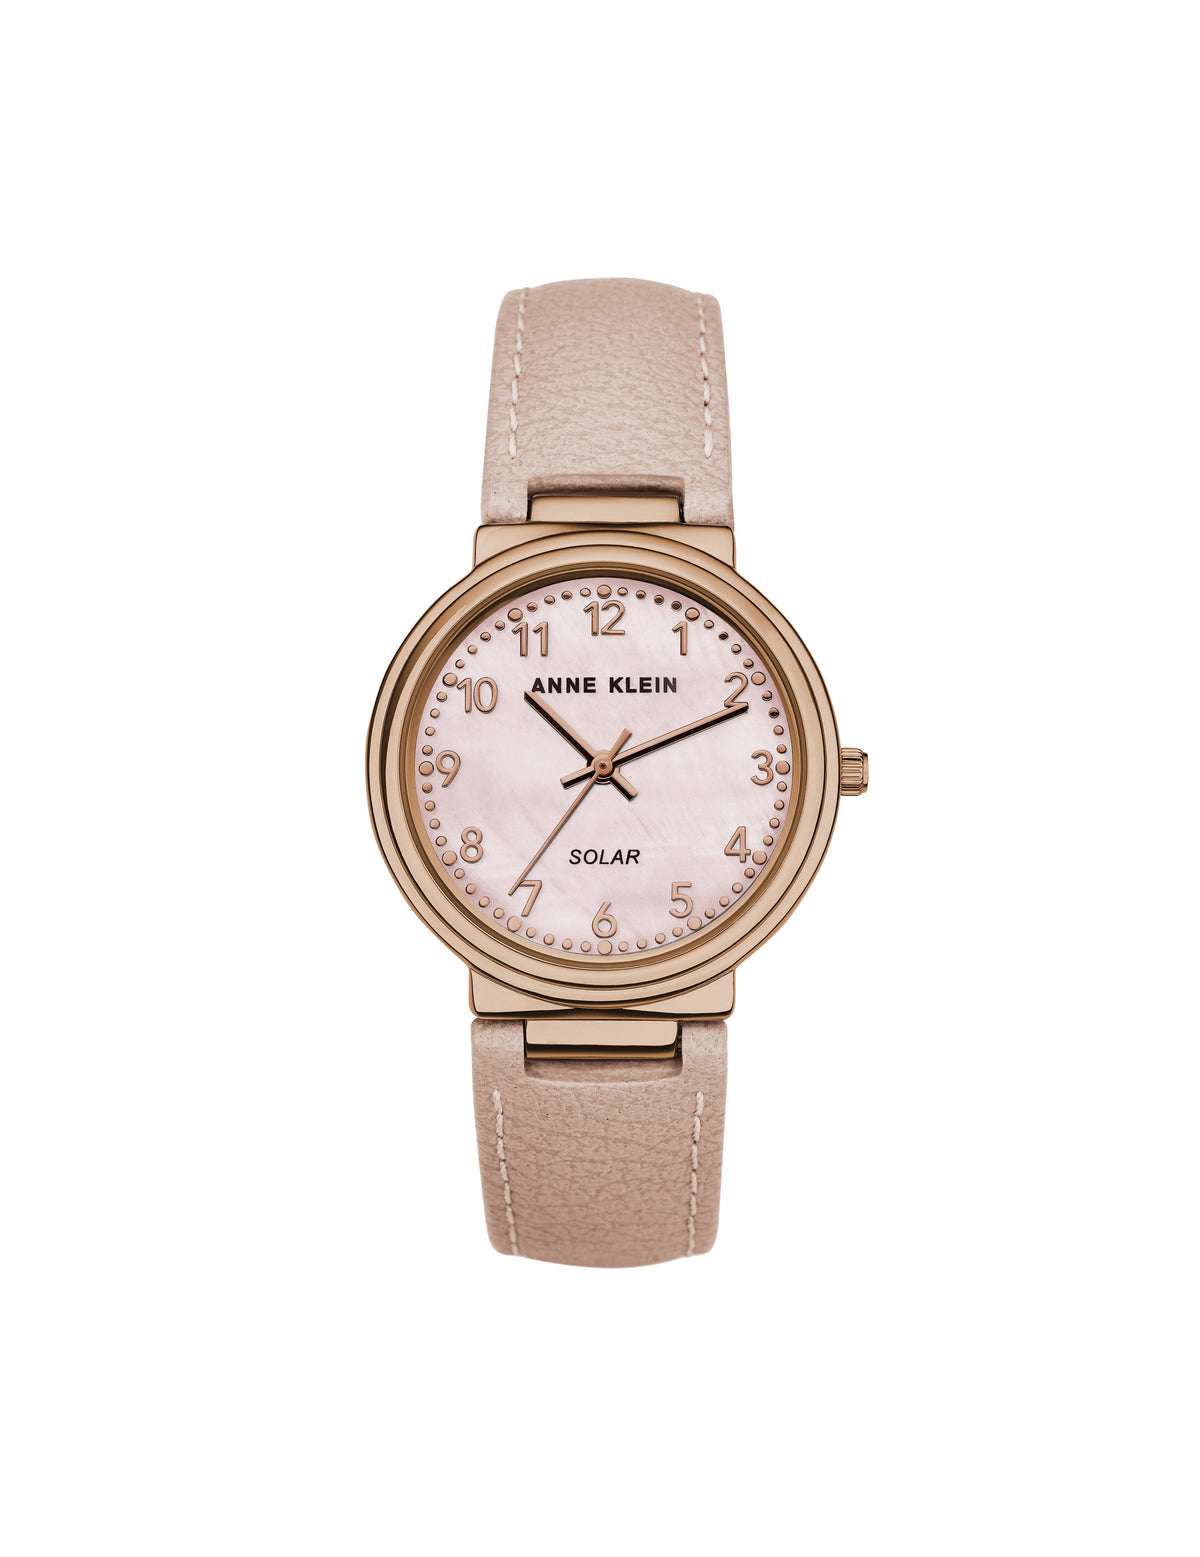 considered solar powered easy read dial blush pink rose gold apple peel leather strap watch